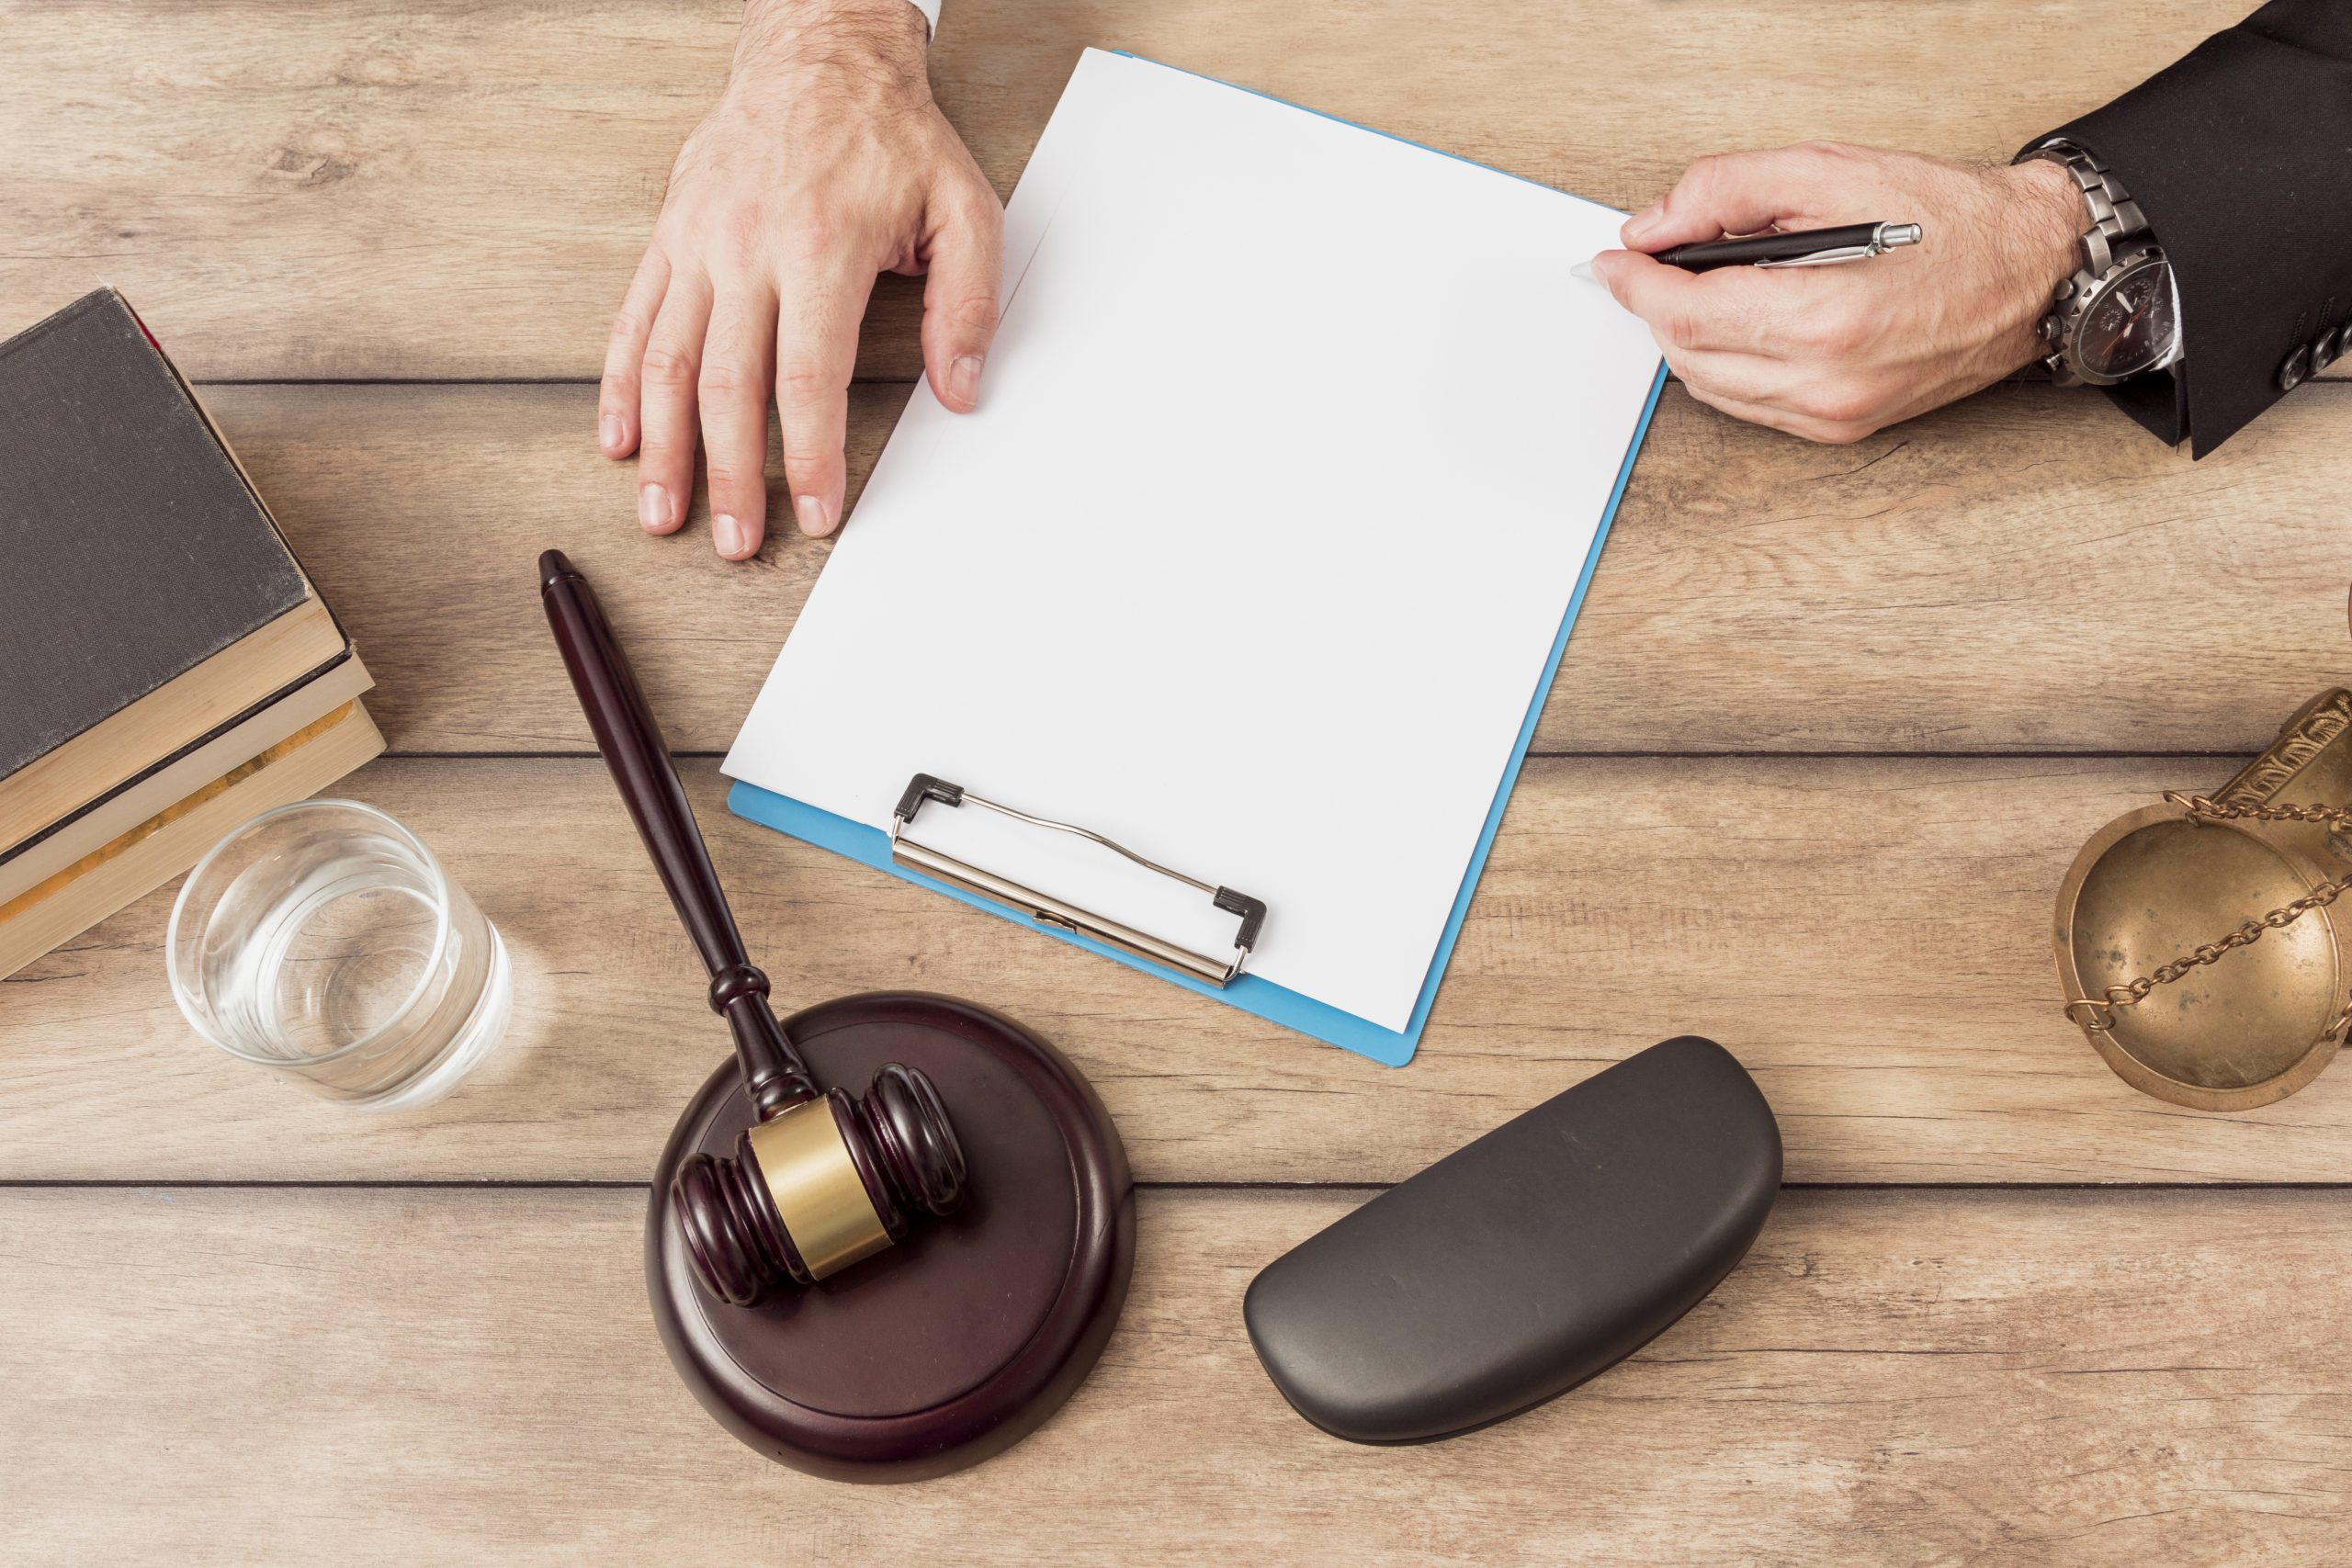 Are You Looking For a Lawyer in Sharjah? Discover Our Services